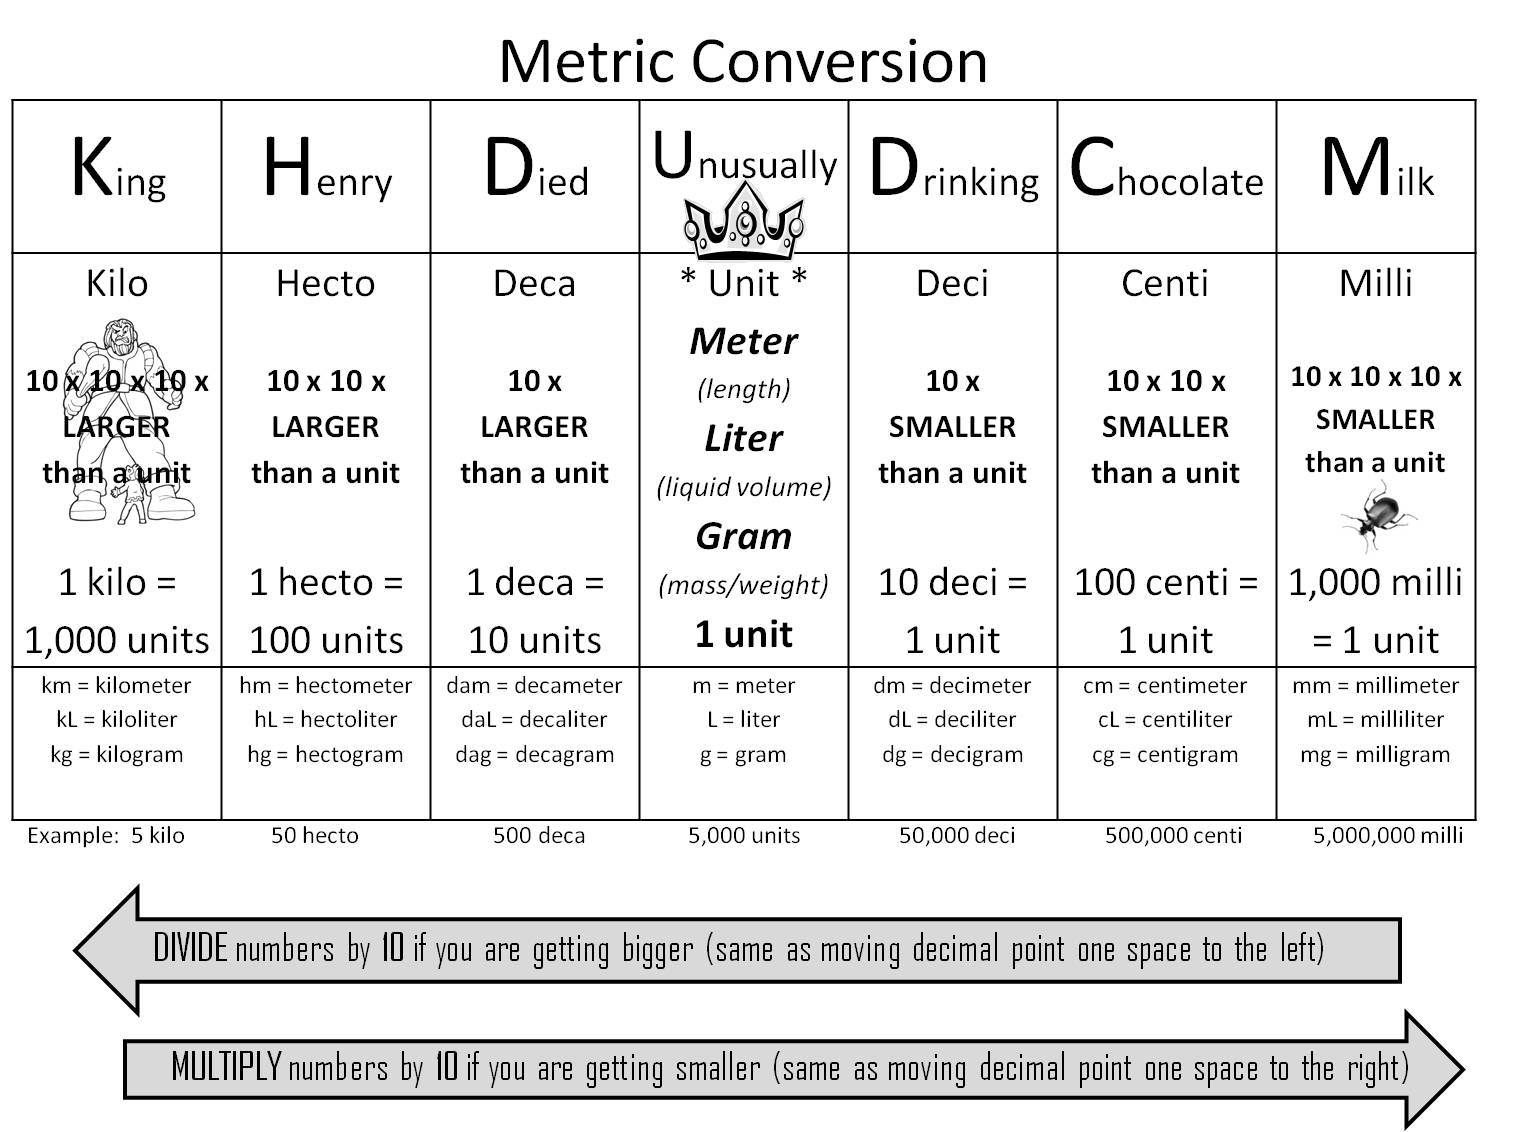 Science conversions chart asafonec science conversions chart nvjuhfo Choice Image